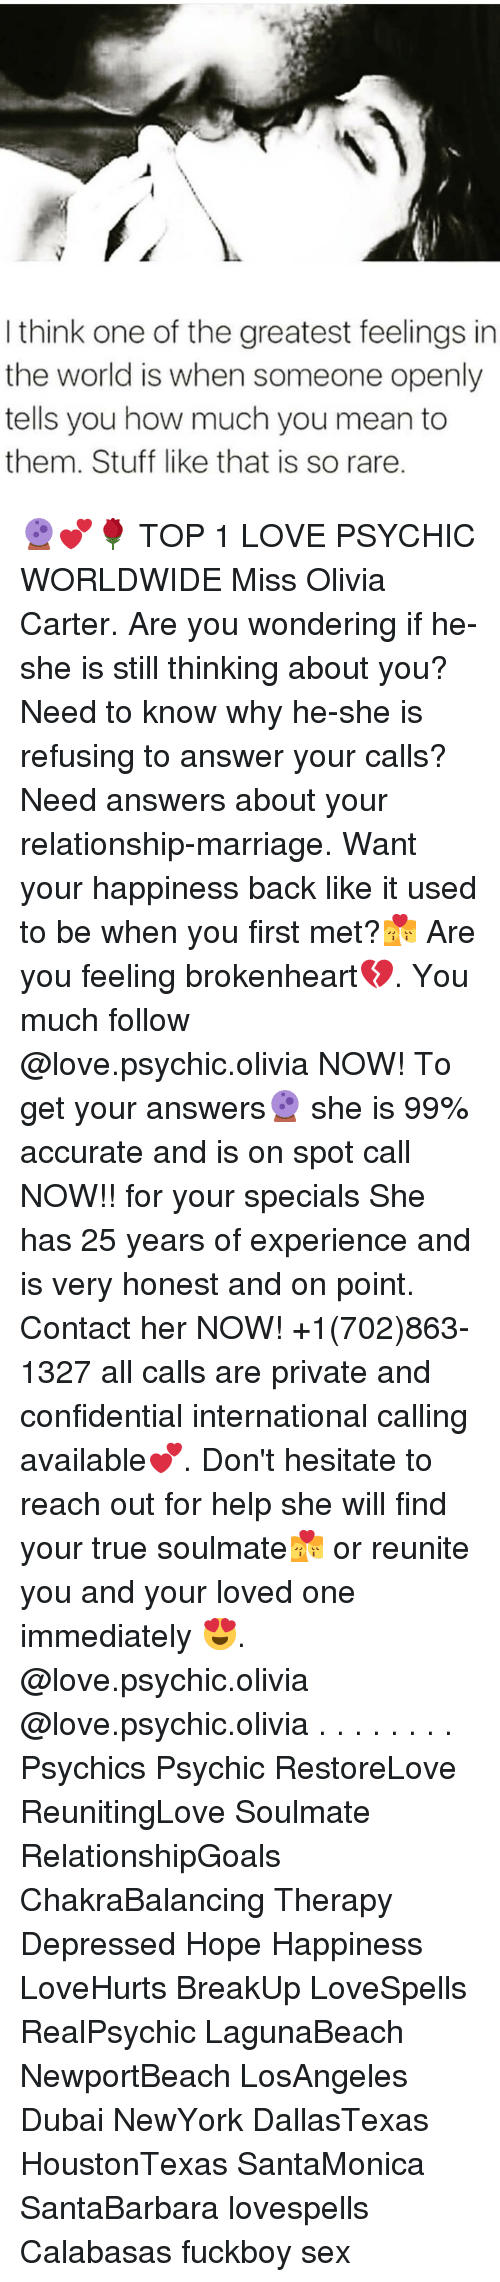 brokenheart: I think one of the greatest feelings in  the world is when someone openly  tells you how much you mean to  them. Stuff like that is so rare. 🔮💕🌹 TOP 1 LOVE PSYCHIC WORLDWIDE Miss Olivia Carter. Are you wondering if he-she is still thinking about you? Need to know why he-she is refusing to answer your calls? Need answers about your relationship-marriage. Want your happiness back like it used to be when you first met?💏 Are you feeling brokenheart💔. You much follow @love.psychic.olivia NOW! To get your answers🔮 she is 99% accurate and is on spot call NOW!! for your specials She has 25 years of experience and is very honest and on point. Contact her NOW! +1(702)863-1327 all calls are private and confidential international calling available💕. Don't hesitate to reach out for help she will find your true soulmate💏 or reunite you and your loved one immediately 😍. @love.psychic.olivia @love.psychic.olivia . . . . . . . . Psychics Psychic RestoreLove ReunitingLove Soulmate RelationshipGoals ChakraBalancing Therapy Depressed Hope Happiness LoveHurts BreakUp LoveSpells RealPsychic LagunaBeach NewportBeach LosAngeles Dubai NewYork DallasTexas HoustonTexas SantaMonica SantaBarbara lovespells Calabasas fuckboy sex